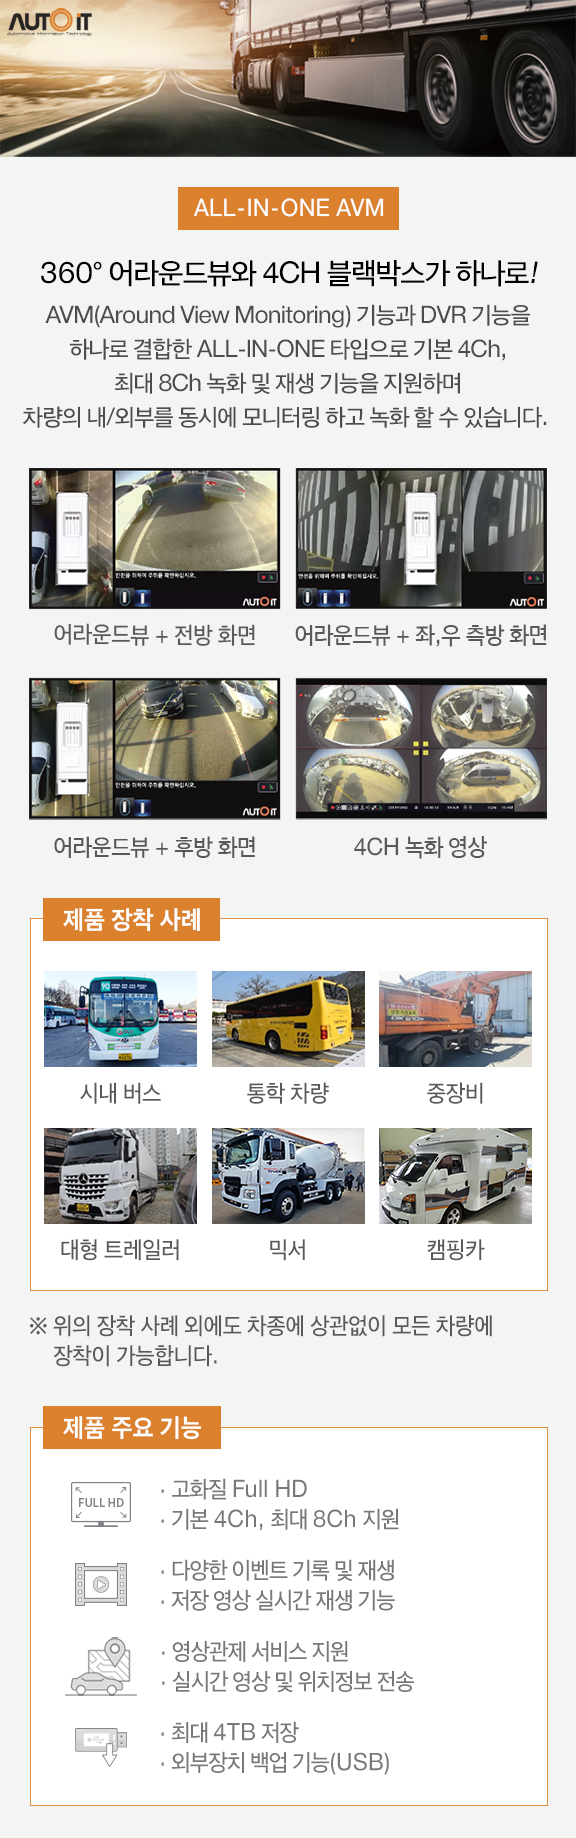 오토아이티(ALL-IN-ONE AVM System)